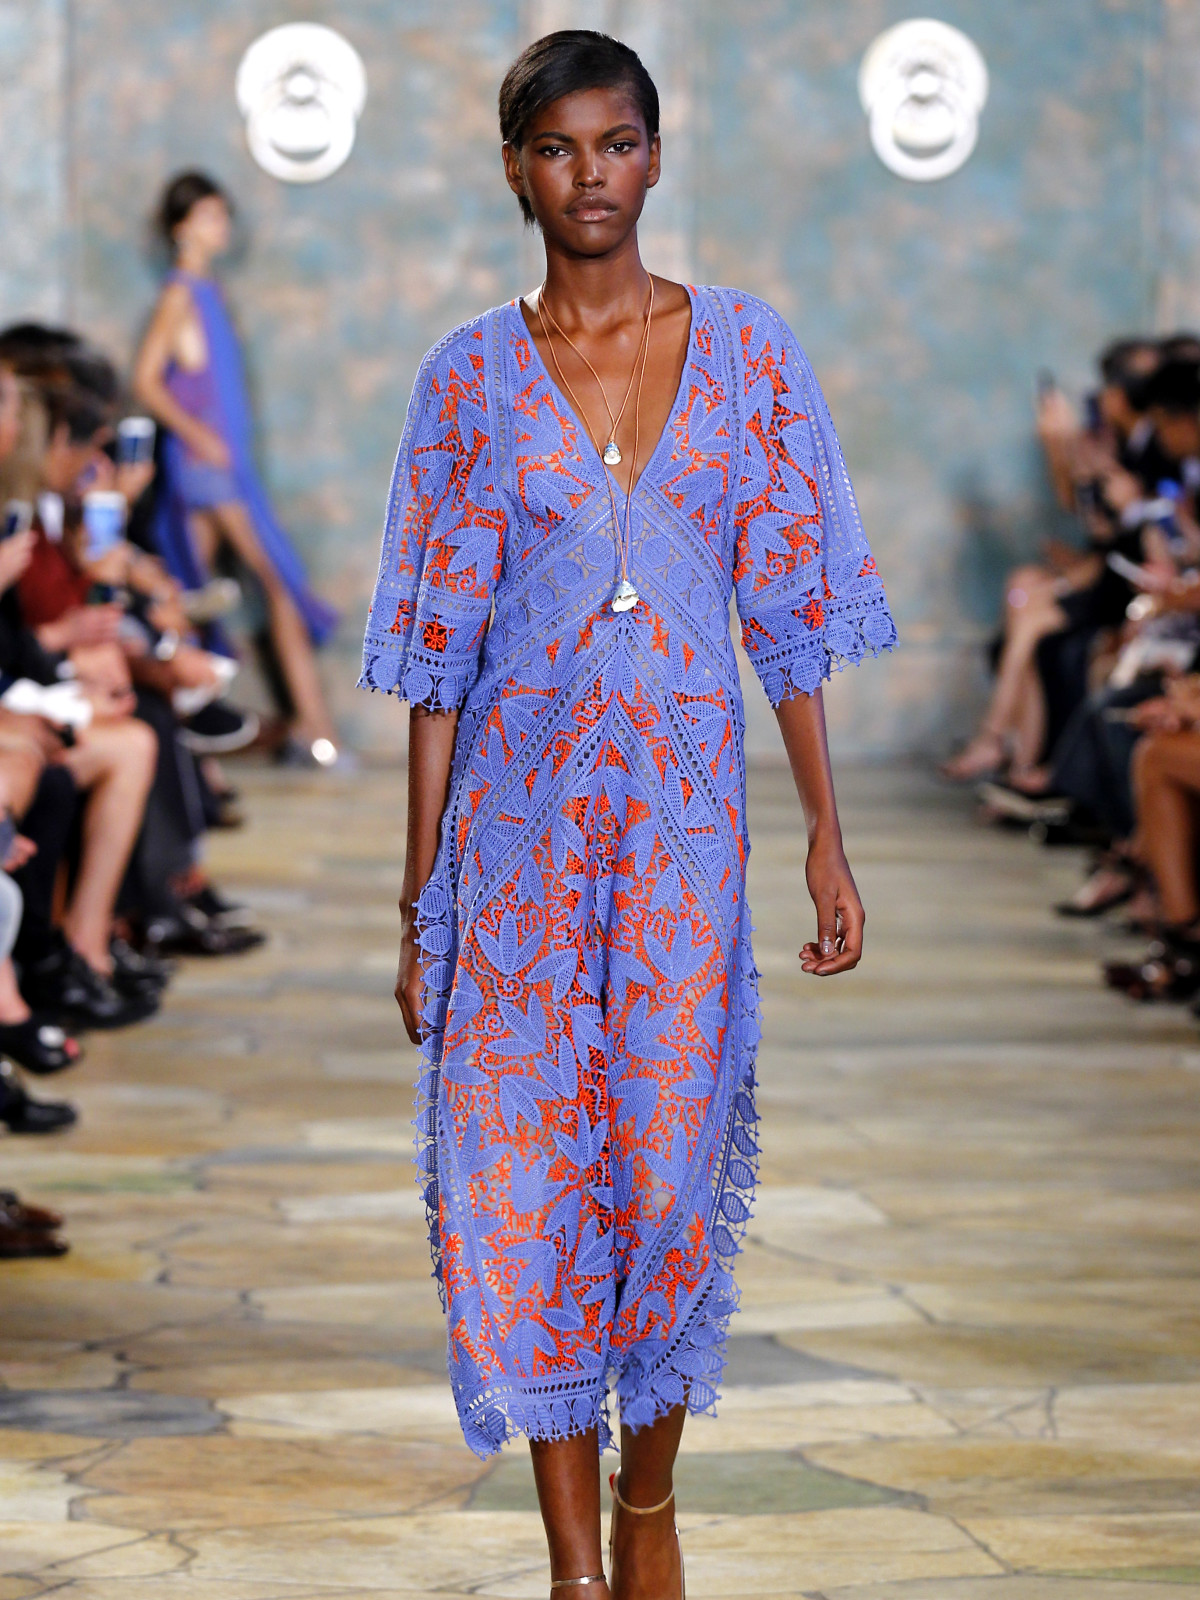 51ca9bb5c8e3d Tory Burch springs some fashion surprises and next hot gold ...